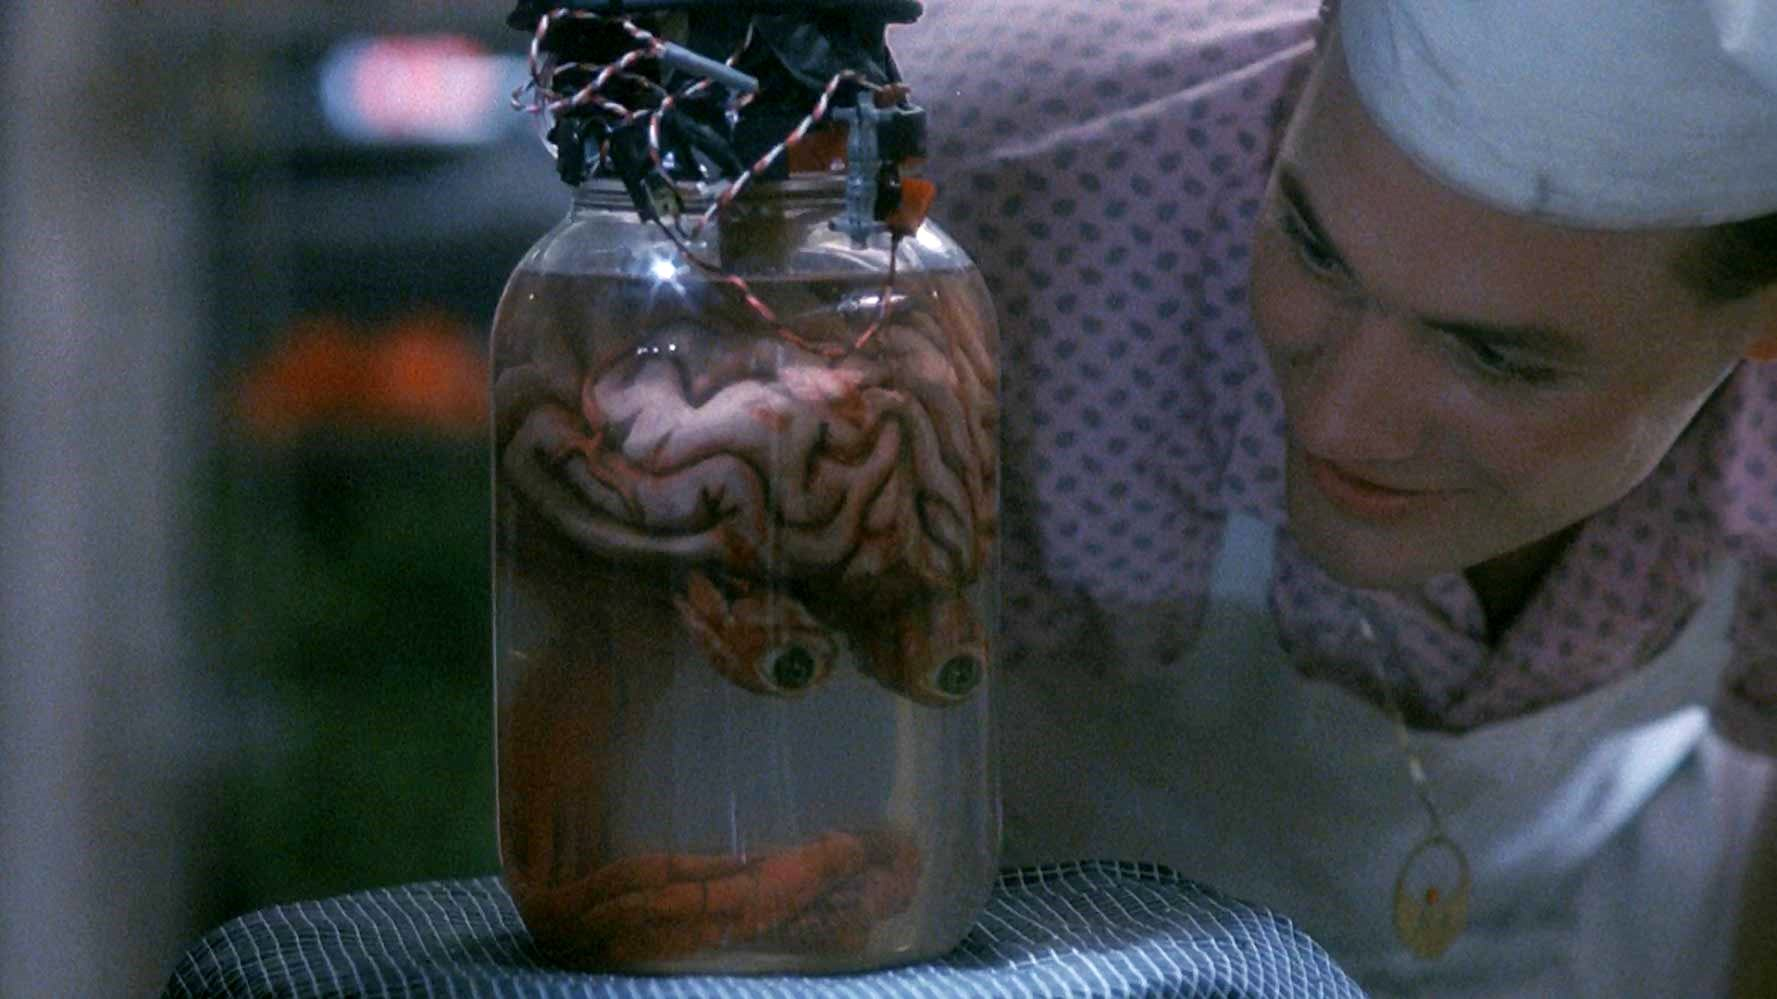 Rick Burks with the brain of Uncle Aylmer in Blood Diner (1987)